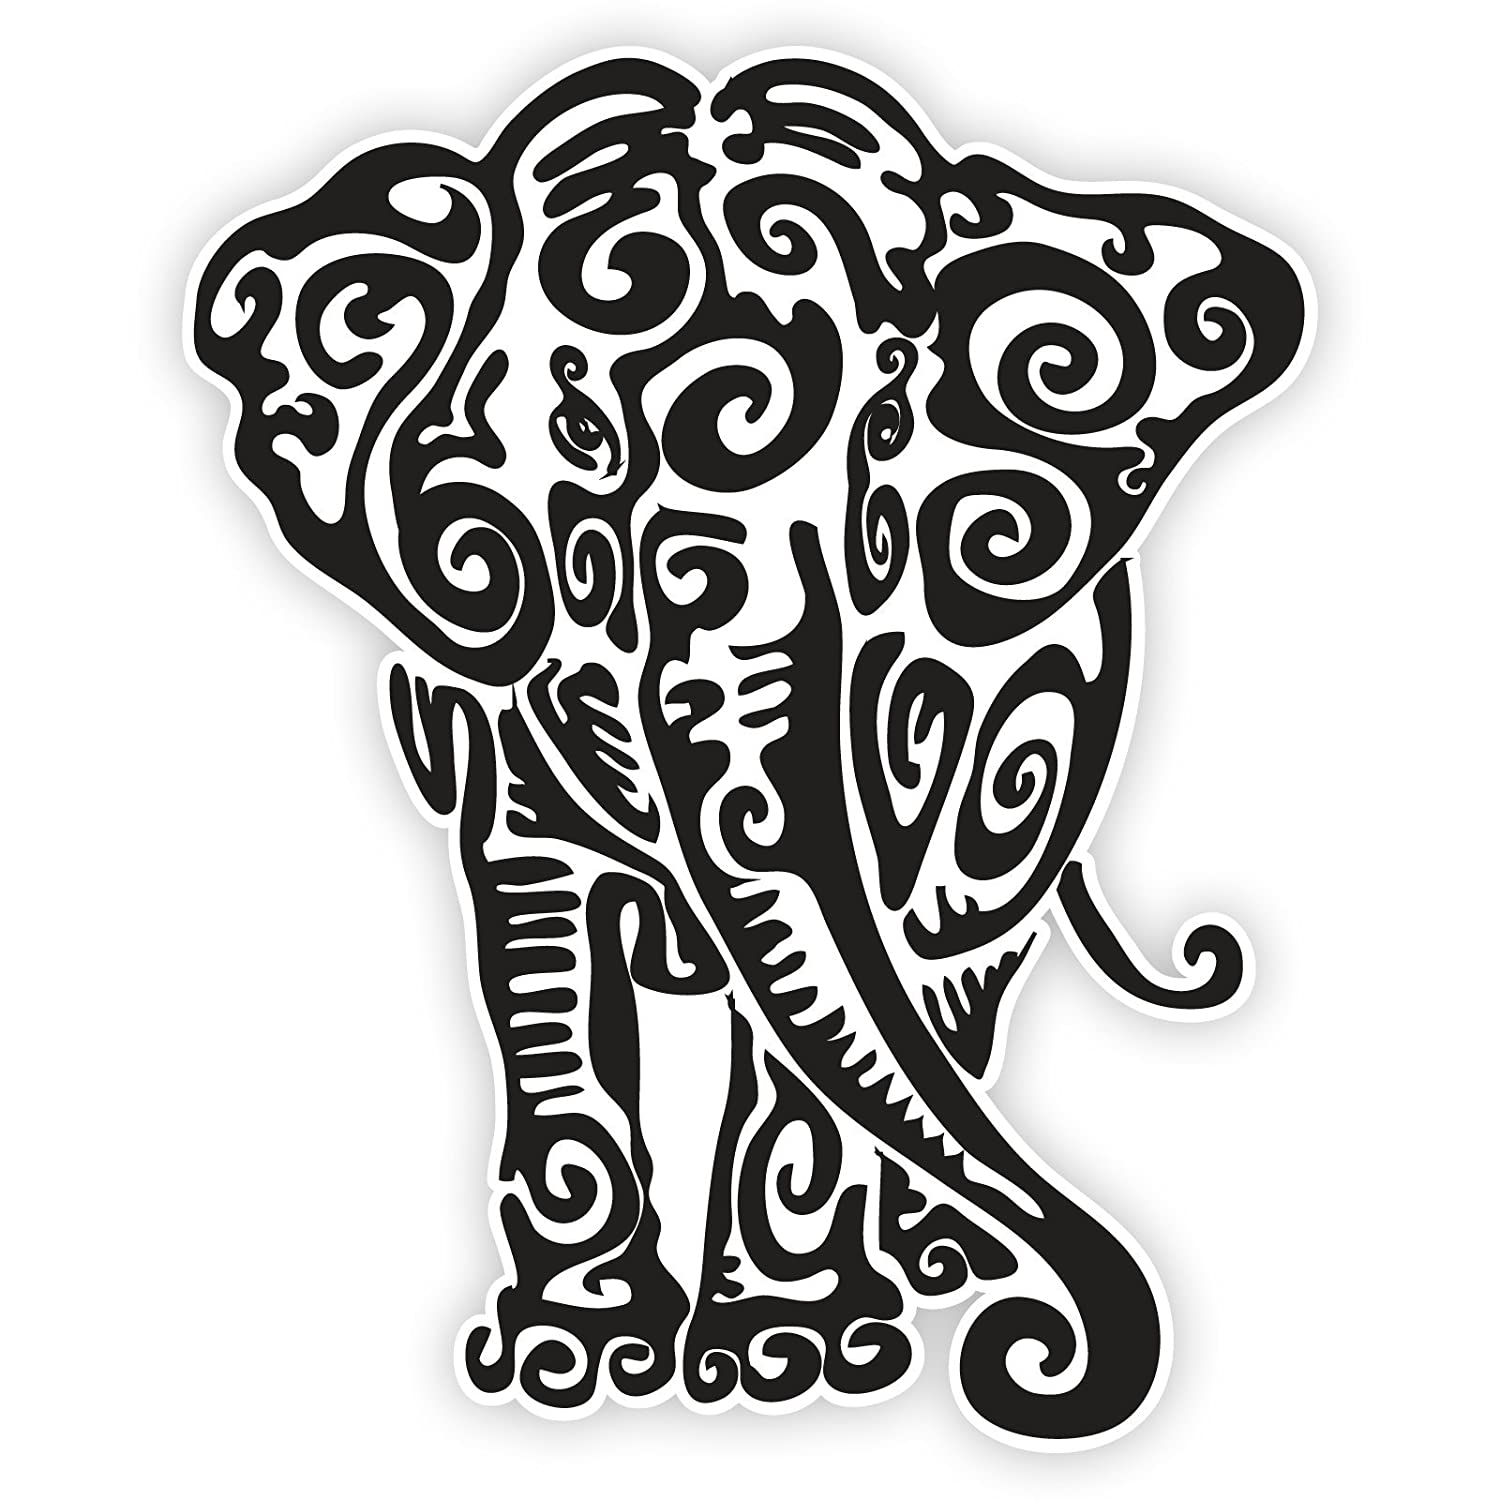 Decal Stickers Vinyl Elephant Car Window Wall Art Decor Doors Helmet Truck Motorcycle Note Book Mobile Laptop Glass Size 4 X 3.2 Inches Black